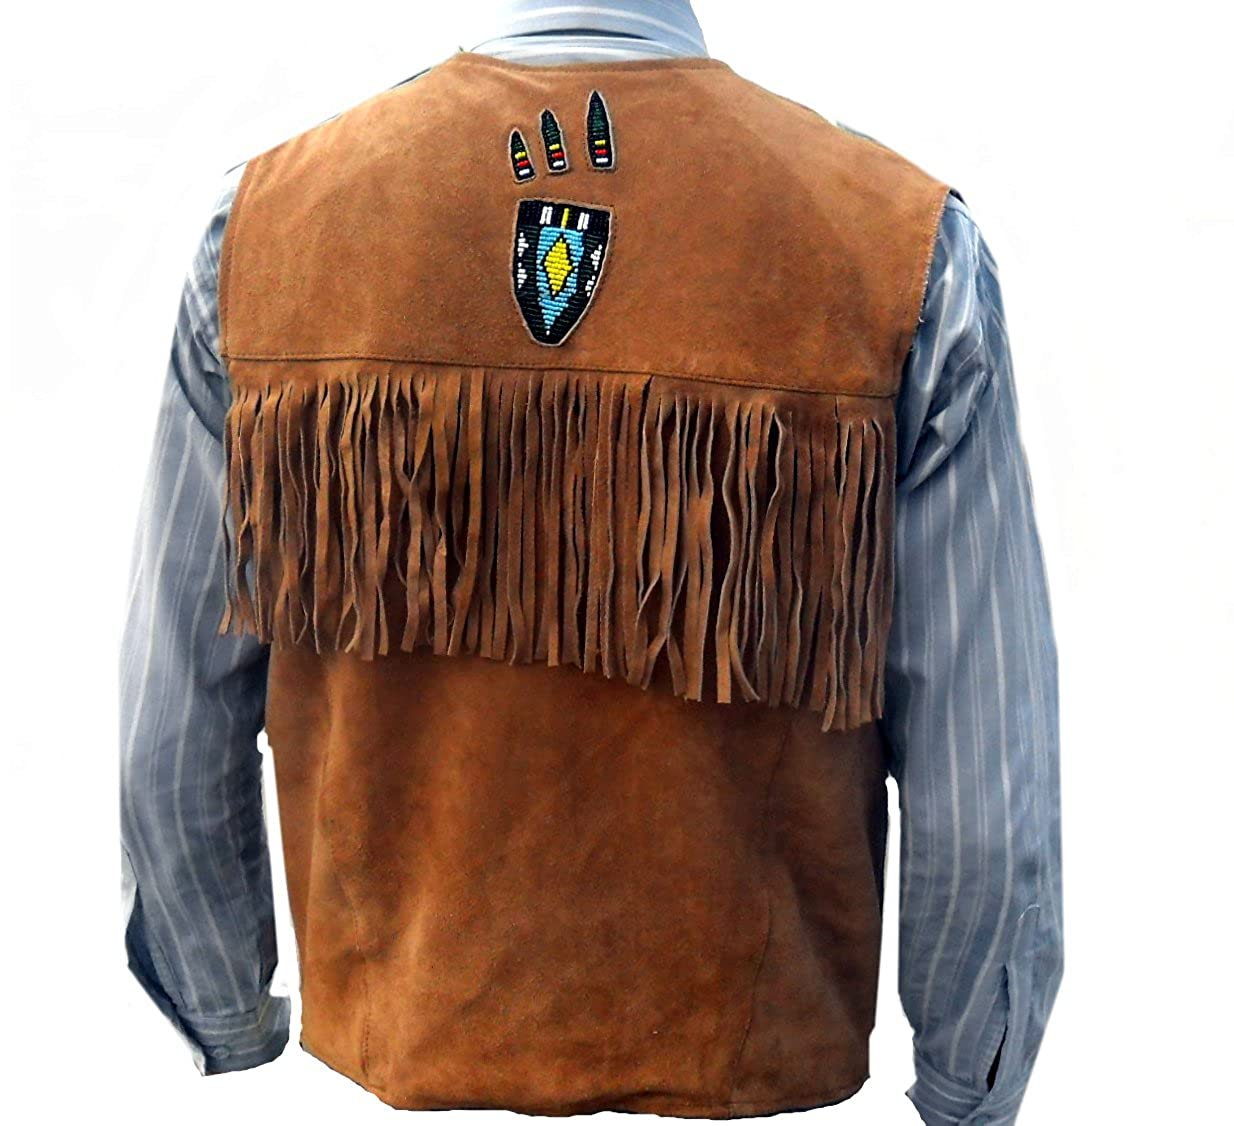 35513664ede Classyak Western Genuine Leather Vest, Excellent Beads Work & Fringed,  Xs-5xl